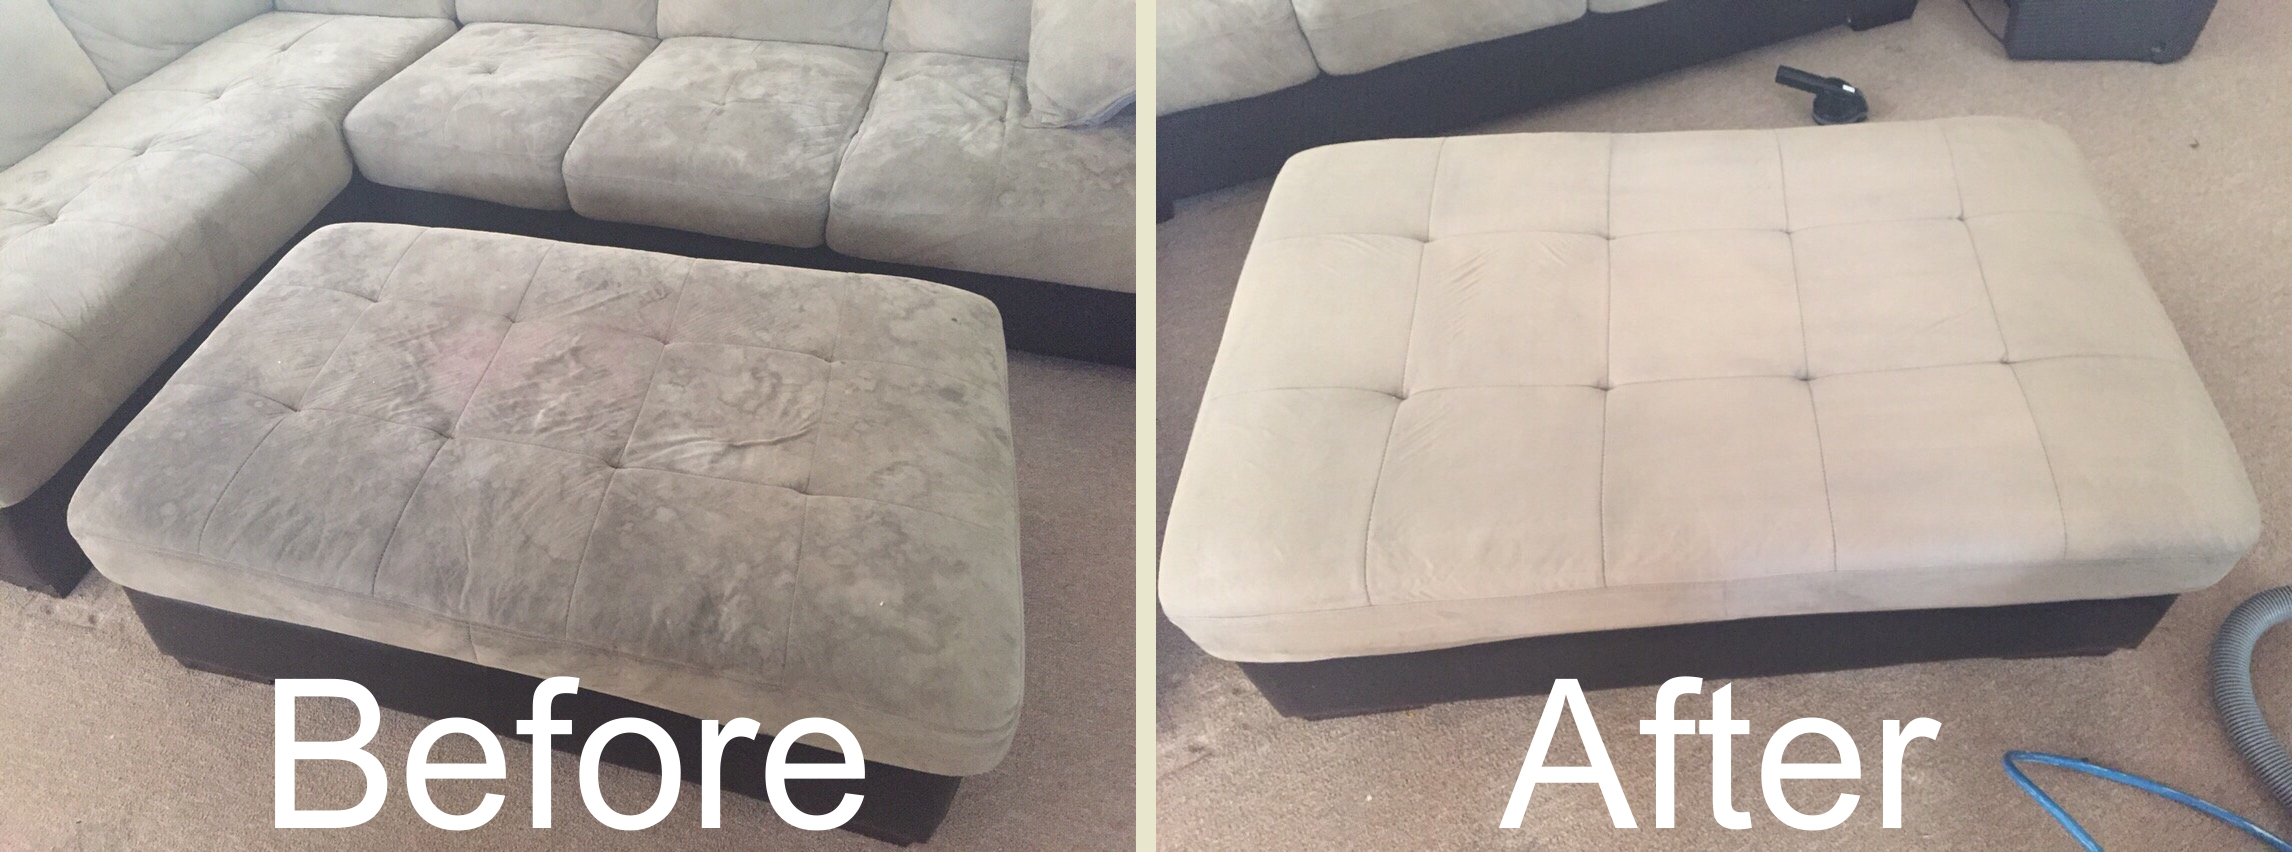 Upholstery Cleaning Chicago Sofa Love Seat - Sofa upholstery cleaning